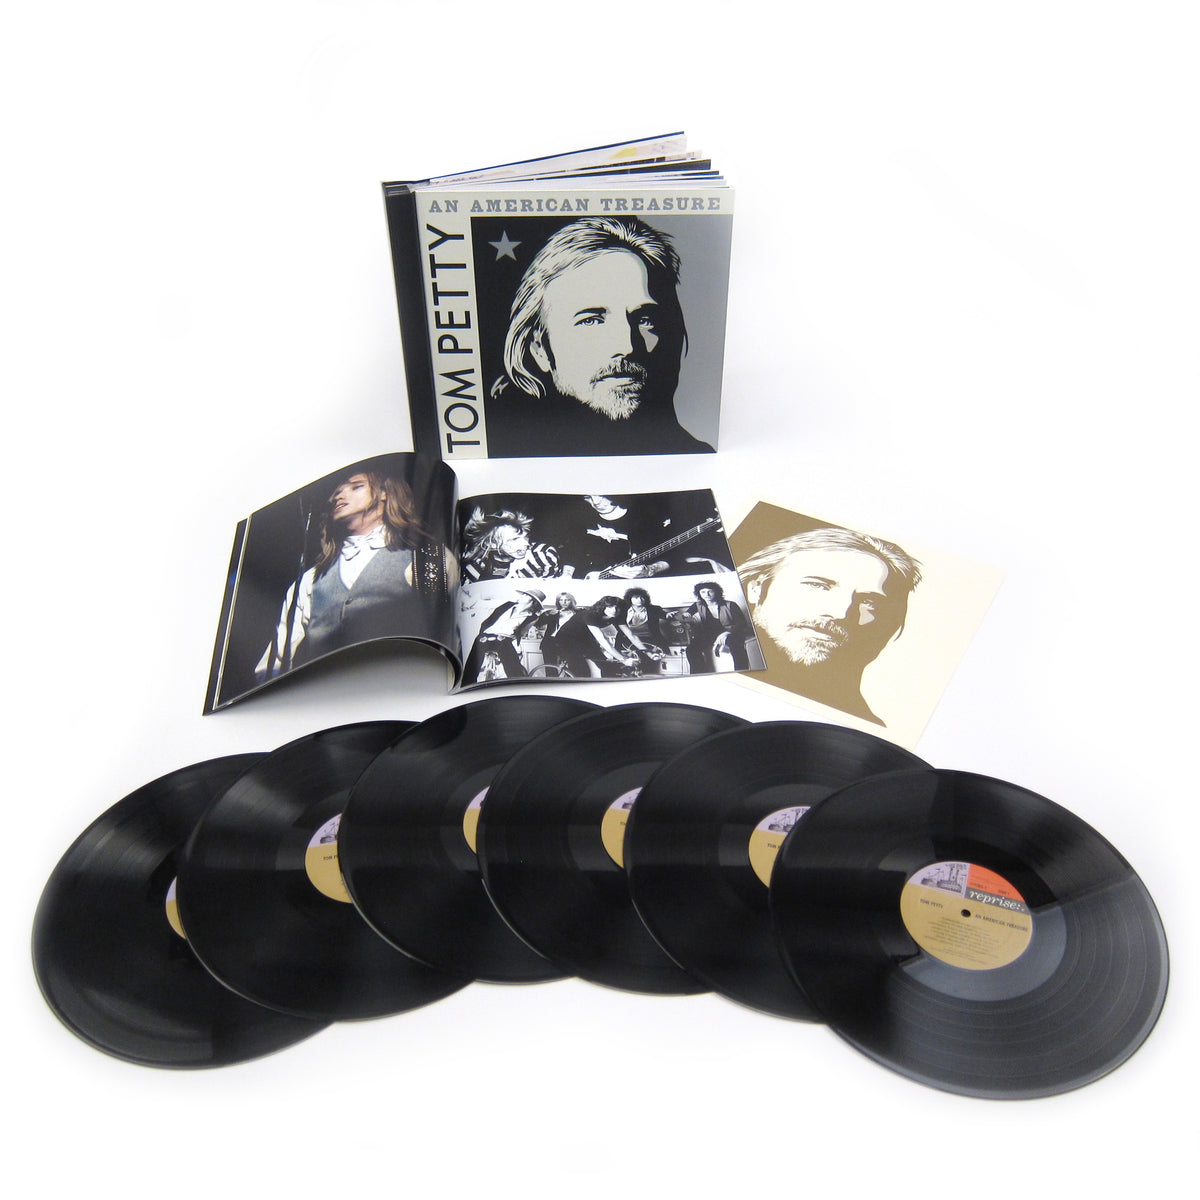 Tom Petty: An American Treasure (Indie Exclusive) Vinyl 6LP Boxset